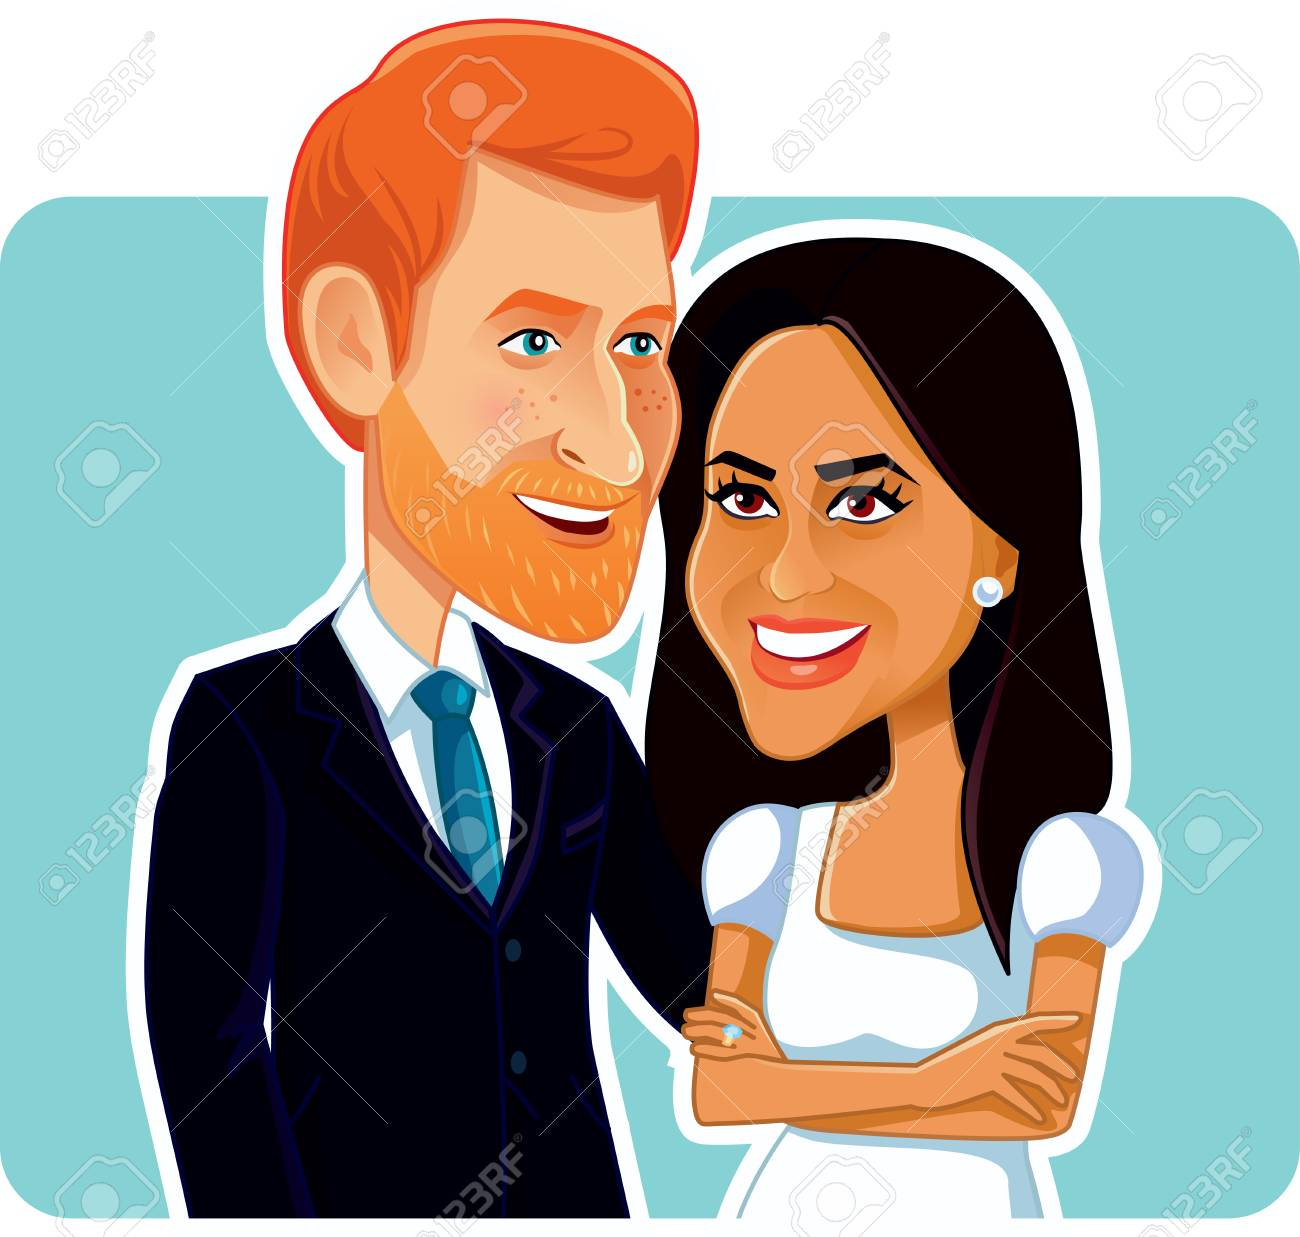 Harry and meghan clipart 1 » Clipart Station.